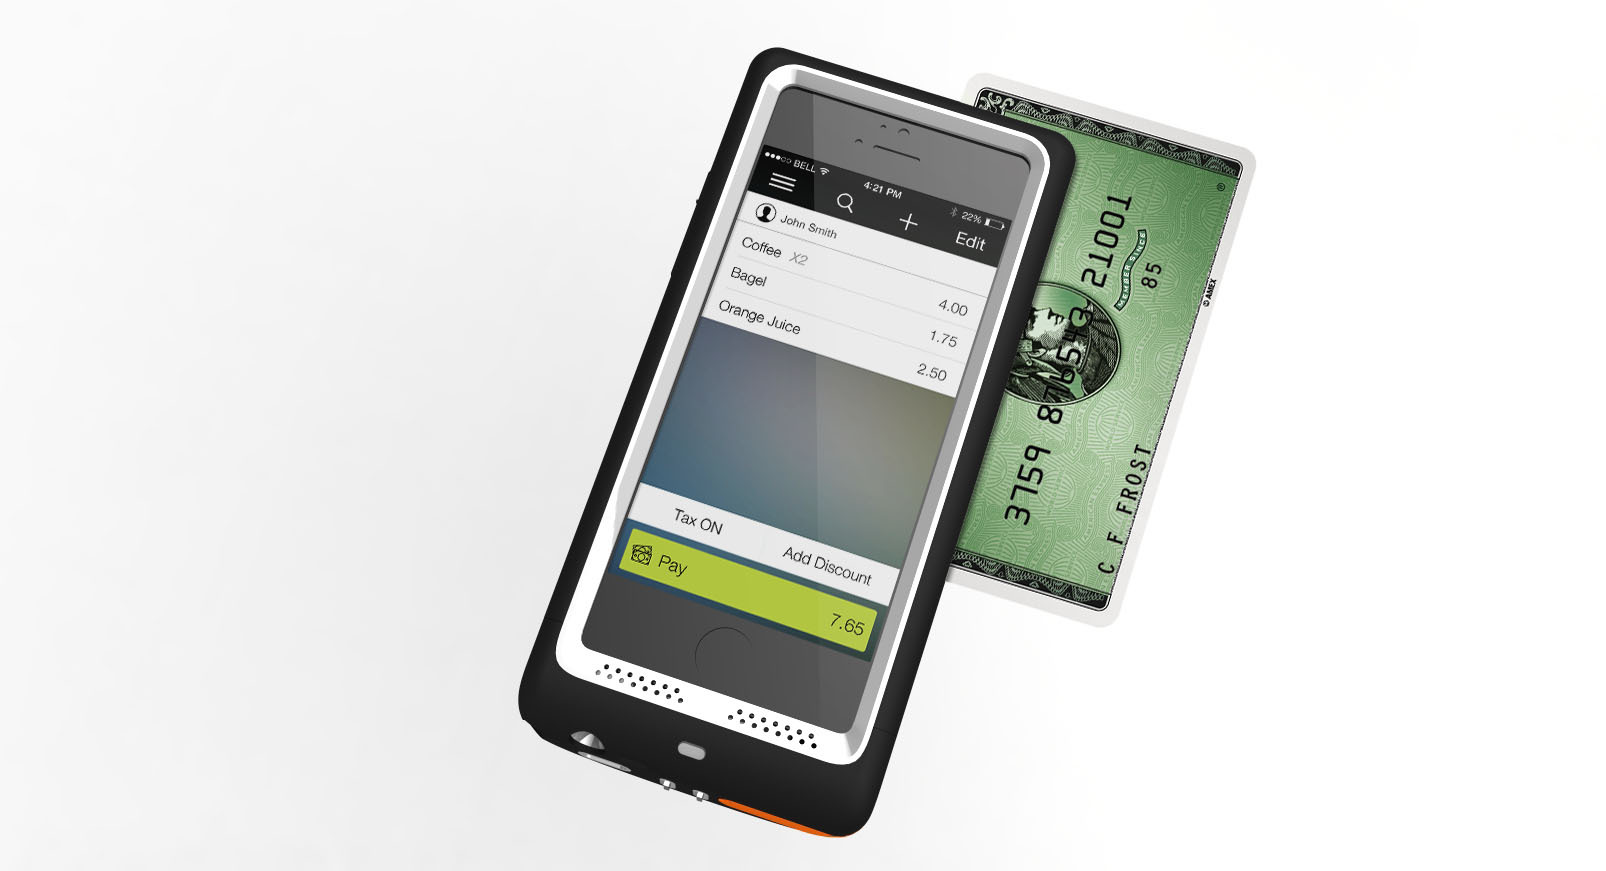 Introducing ShopKeep Mobile, the handheld register that is a complete POS system in your pocket.